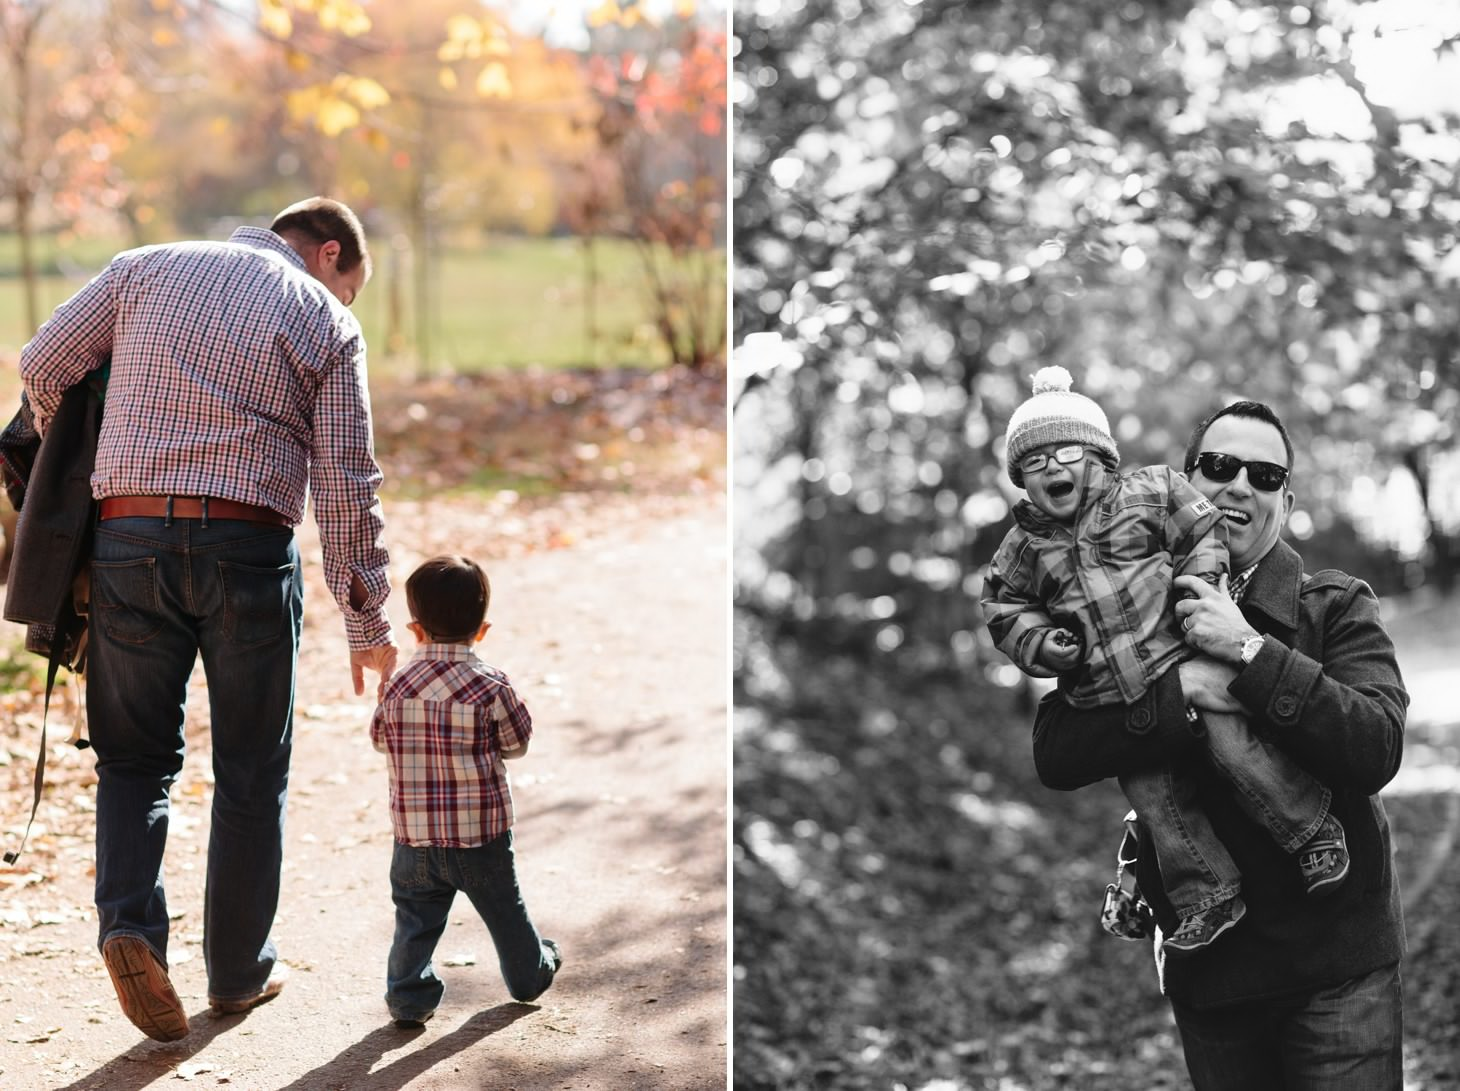 007-nyc-wedding-portrait-photographer-family-holiday-mini-session-children-fall-leaves-grandparents-smitten-chickens.jpg